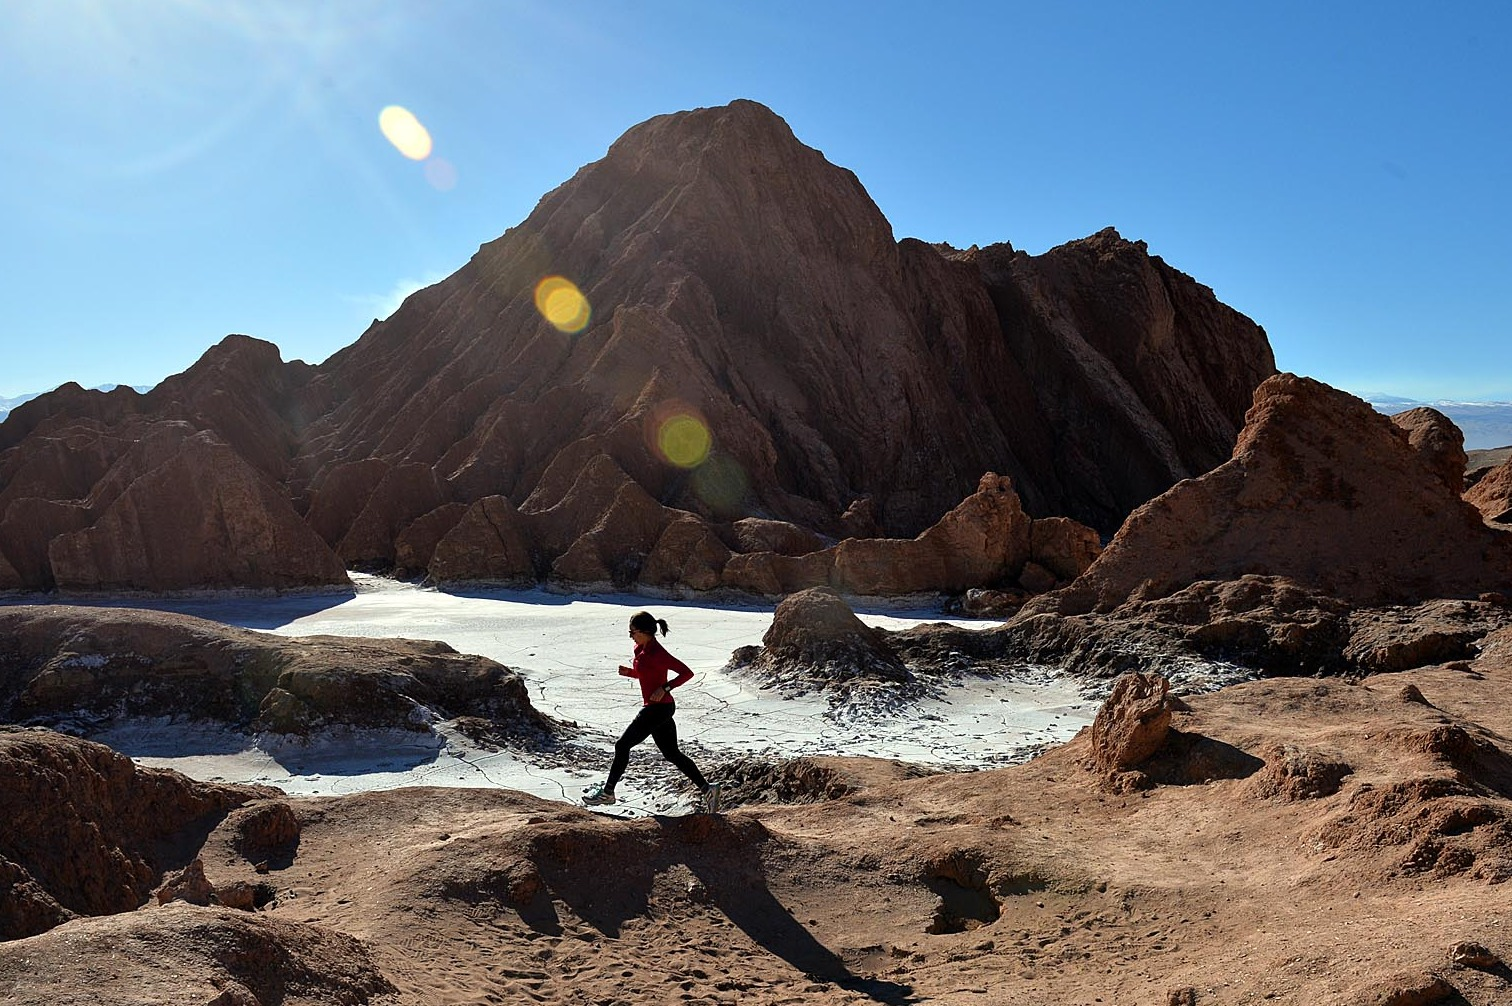 Marathon runner at Volcano Marathon, Chile